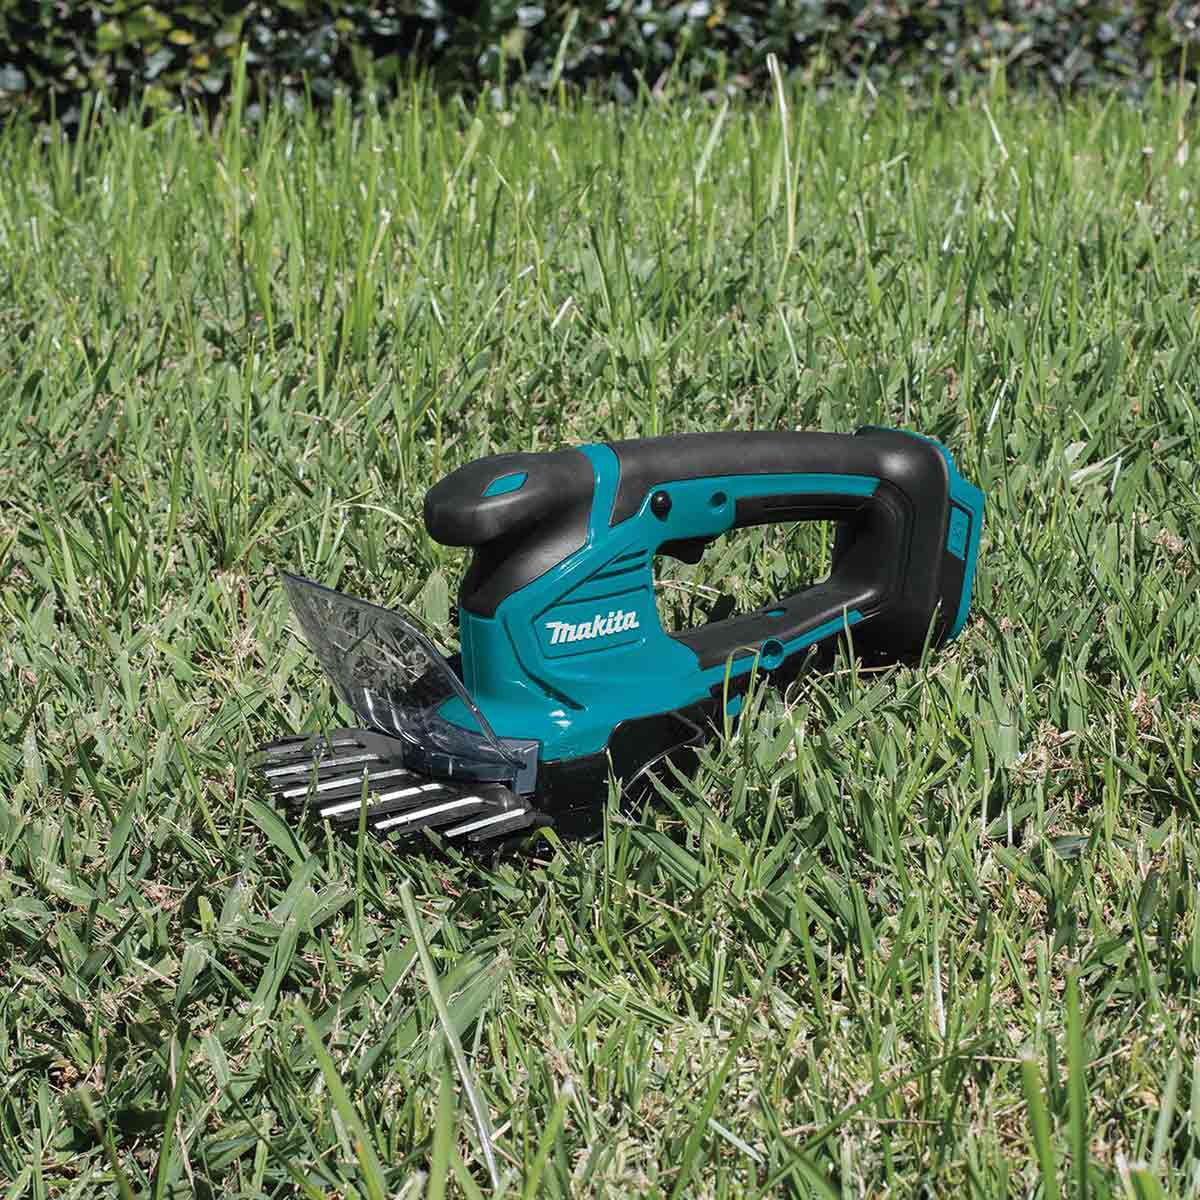 Makita XMU04Z 18V LXT® Lithium-Ion Cordless Grass Shear, Tool Only